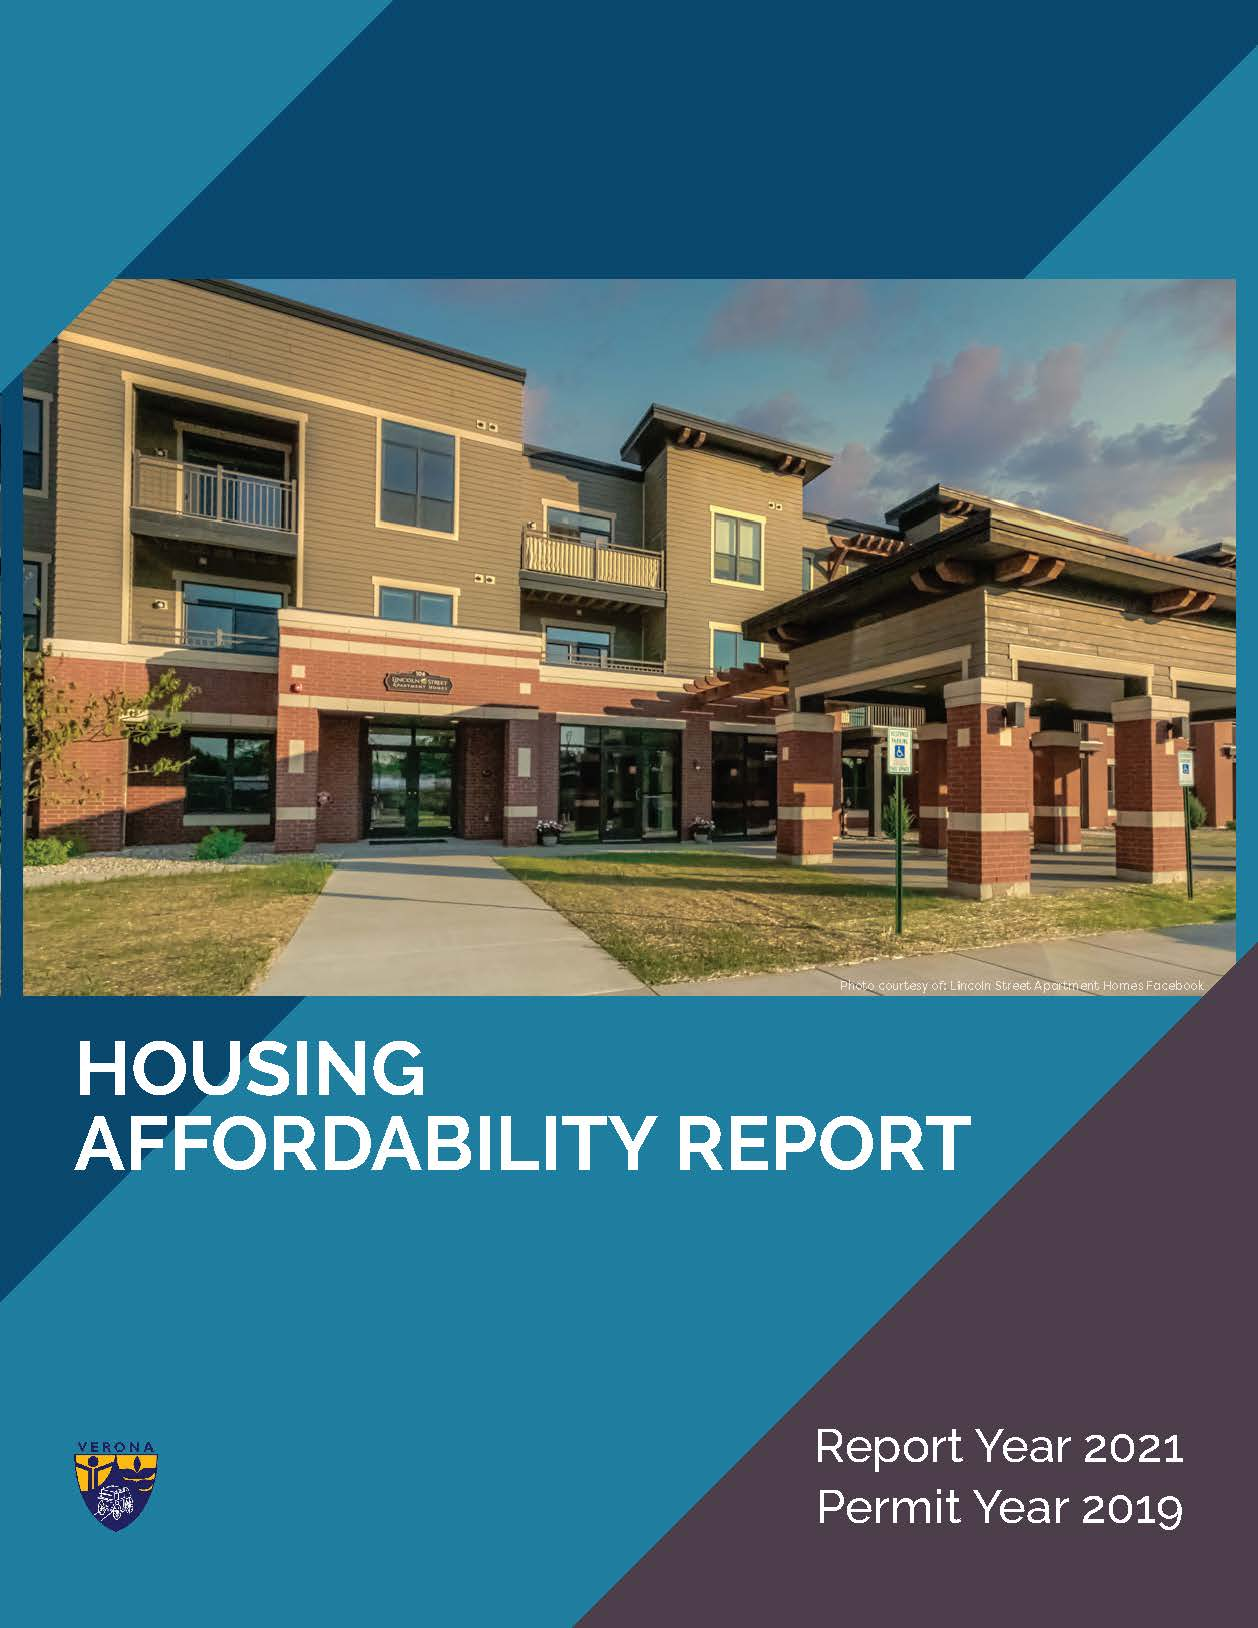 Housing Affordability Analysis - Report Year 2021 Permit Year 2019